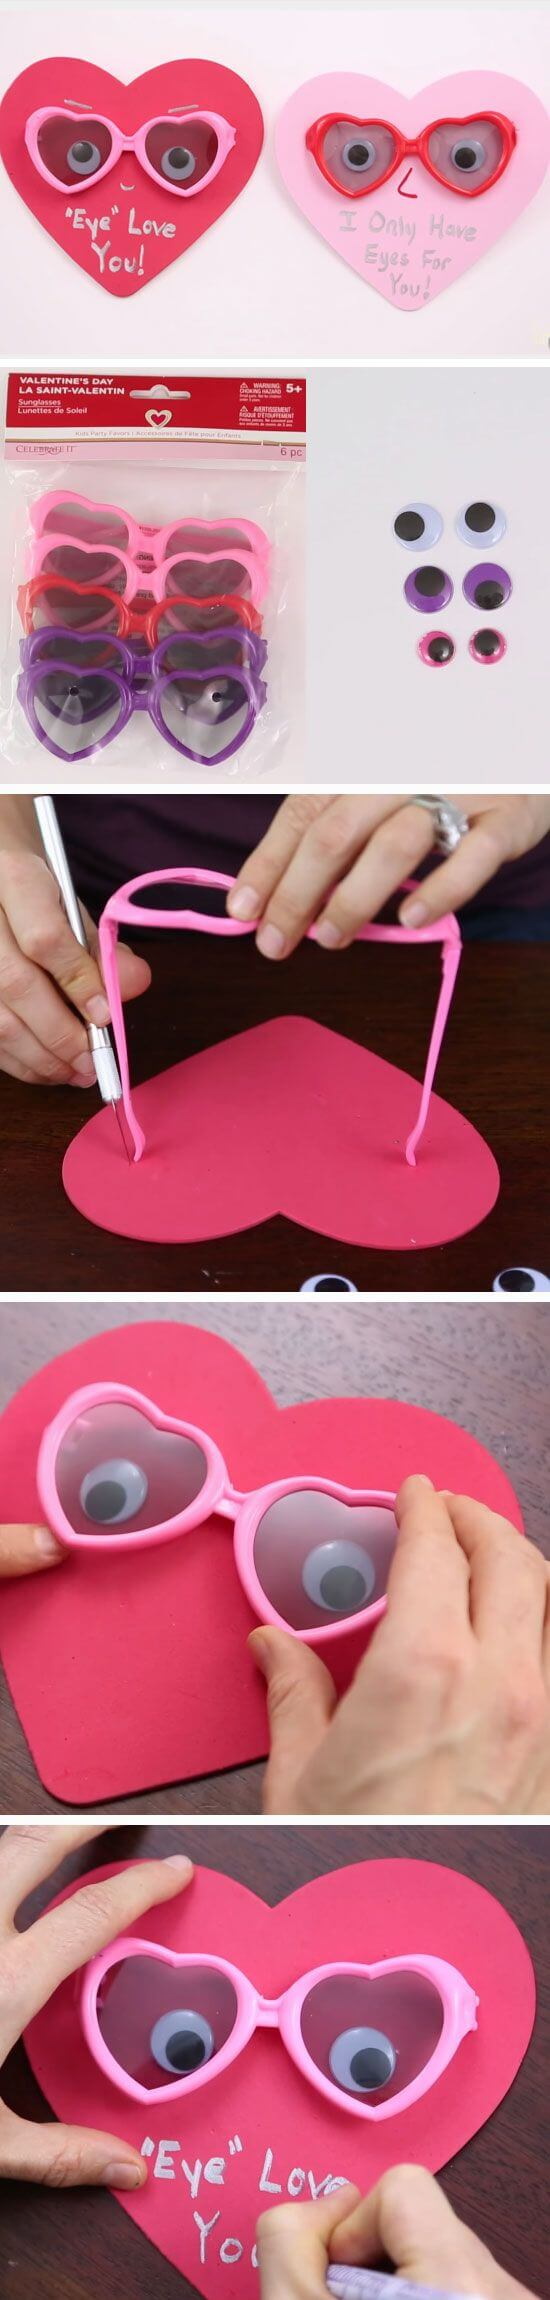 Eye Love You DIY Valentines Crafts for Kids to Make